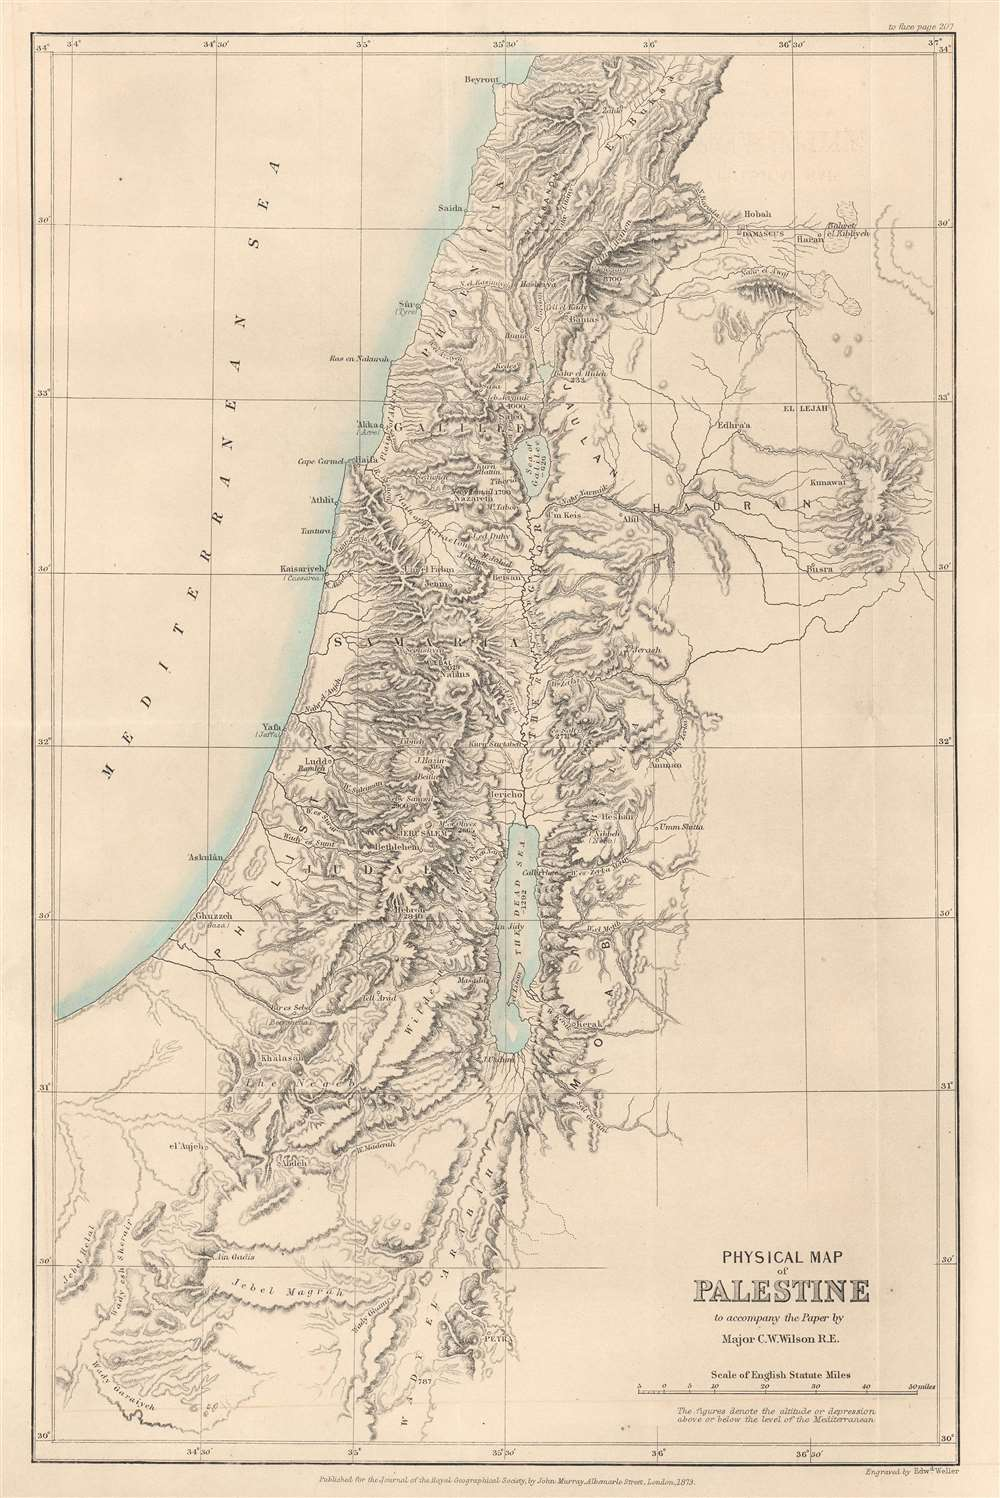 Physical Map of Palestine to accompany the Paper by Major C.W. Wilson R.E. - Main View